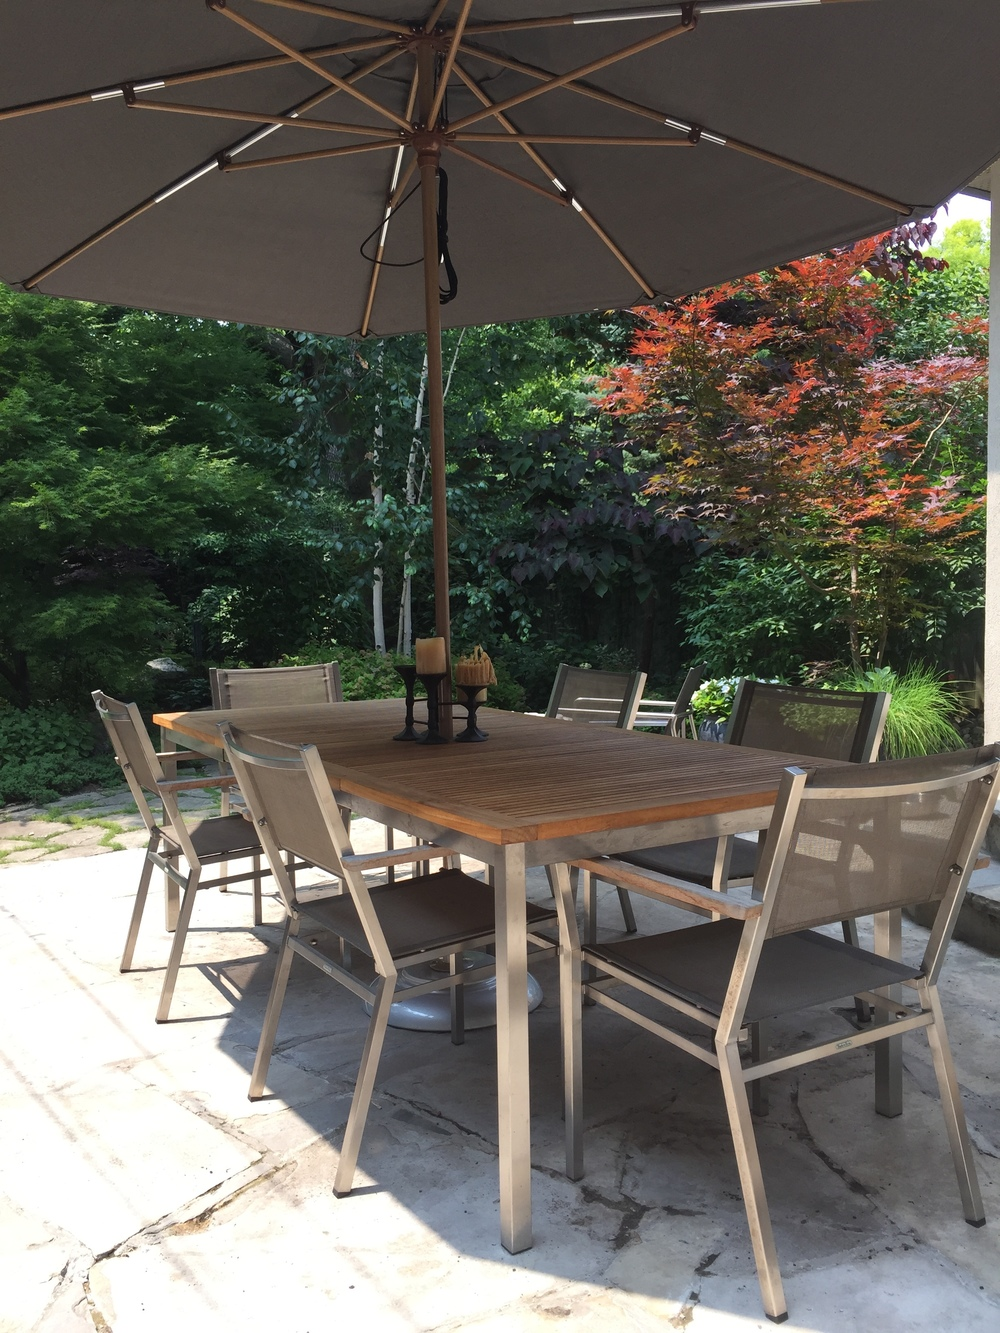 Patio furniture from Gloster, Stainless and teak table. Dining chairs from Barlow Tyrie. Umbrella and base by Tuuci.